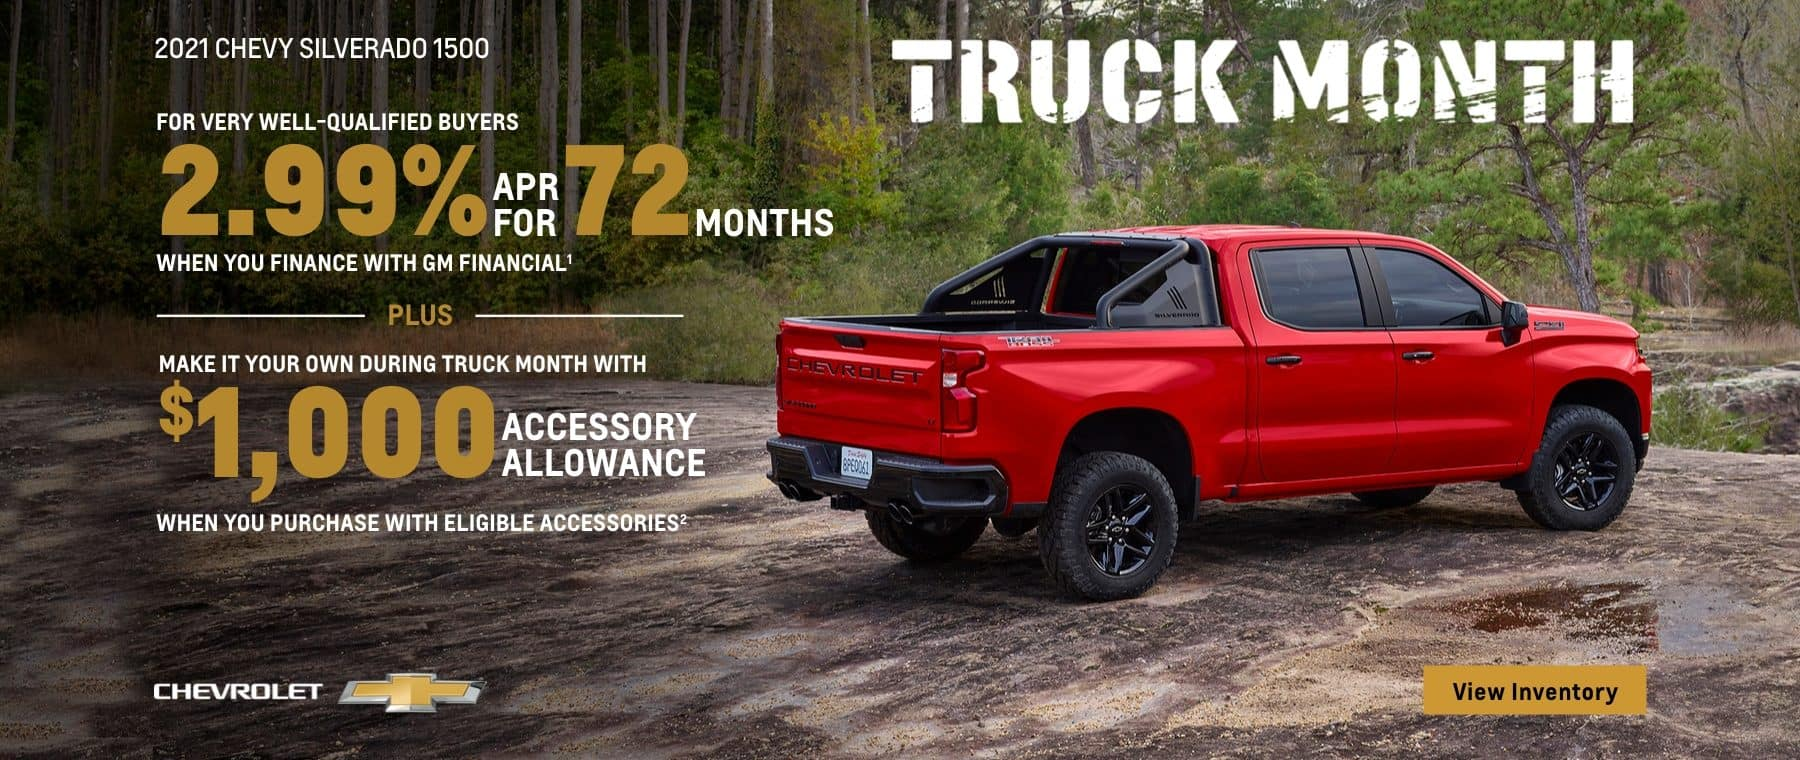 Truck Month, 2021 Chevy SIlverado 2.99% APR for 72 months